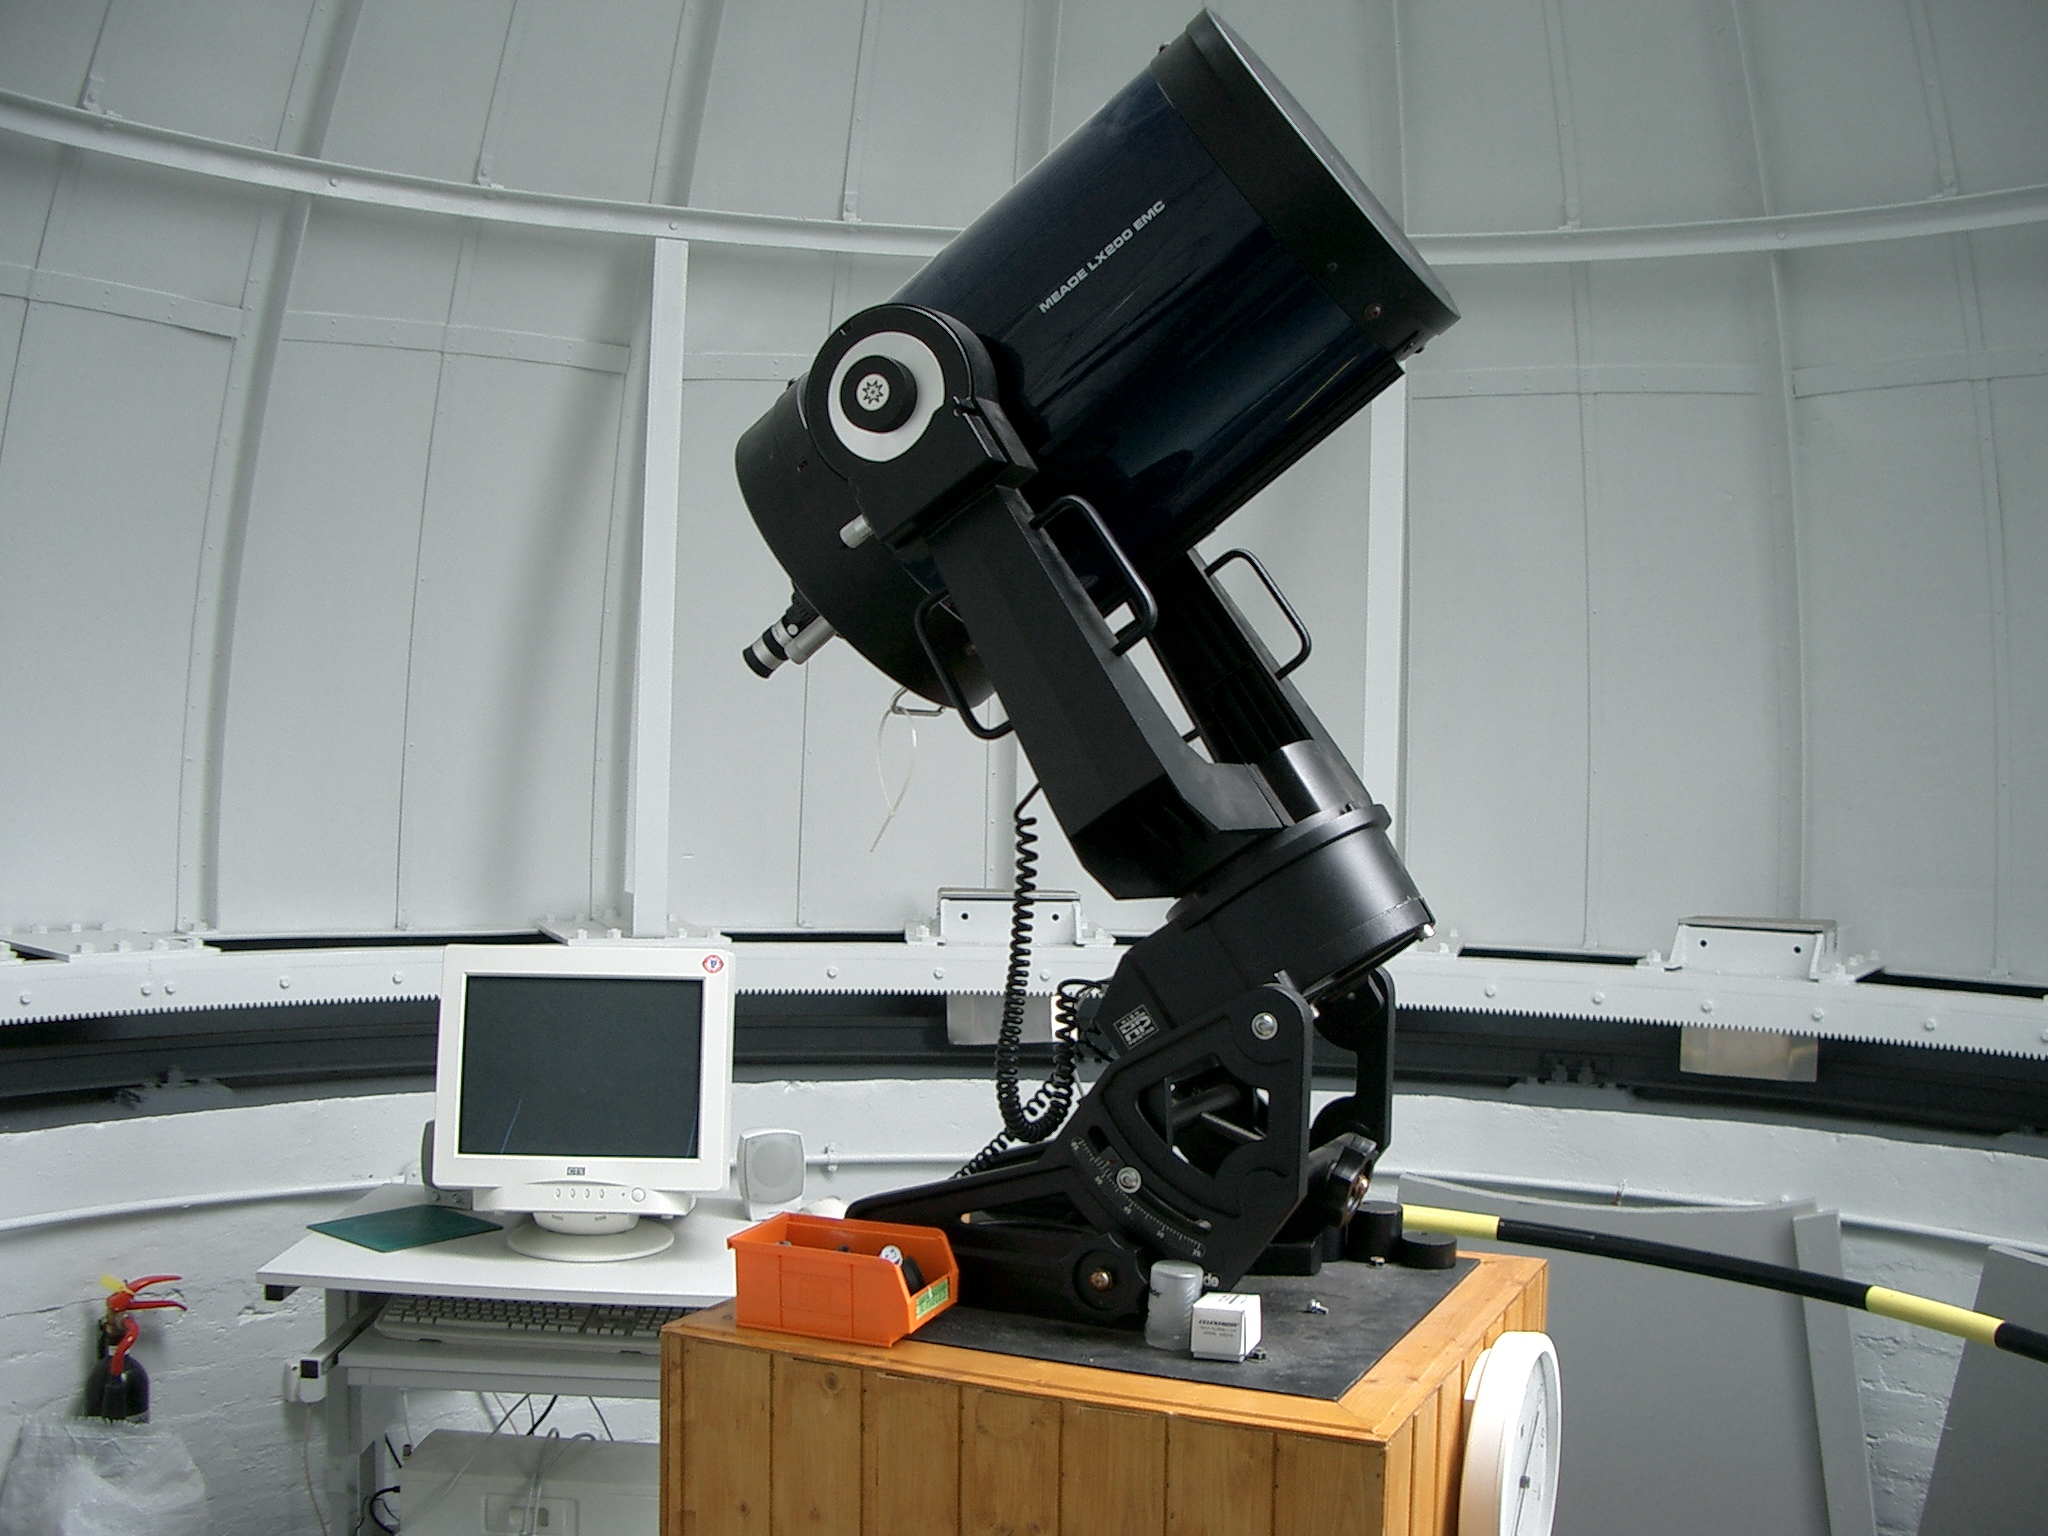 Meade 4504 Telescope Parts - daymix US News